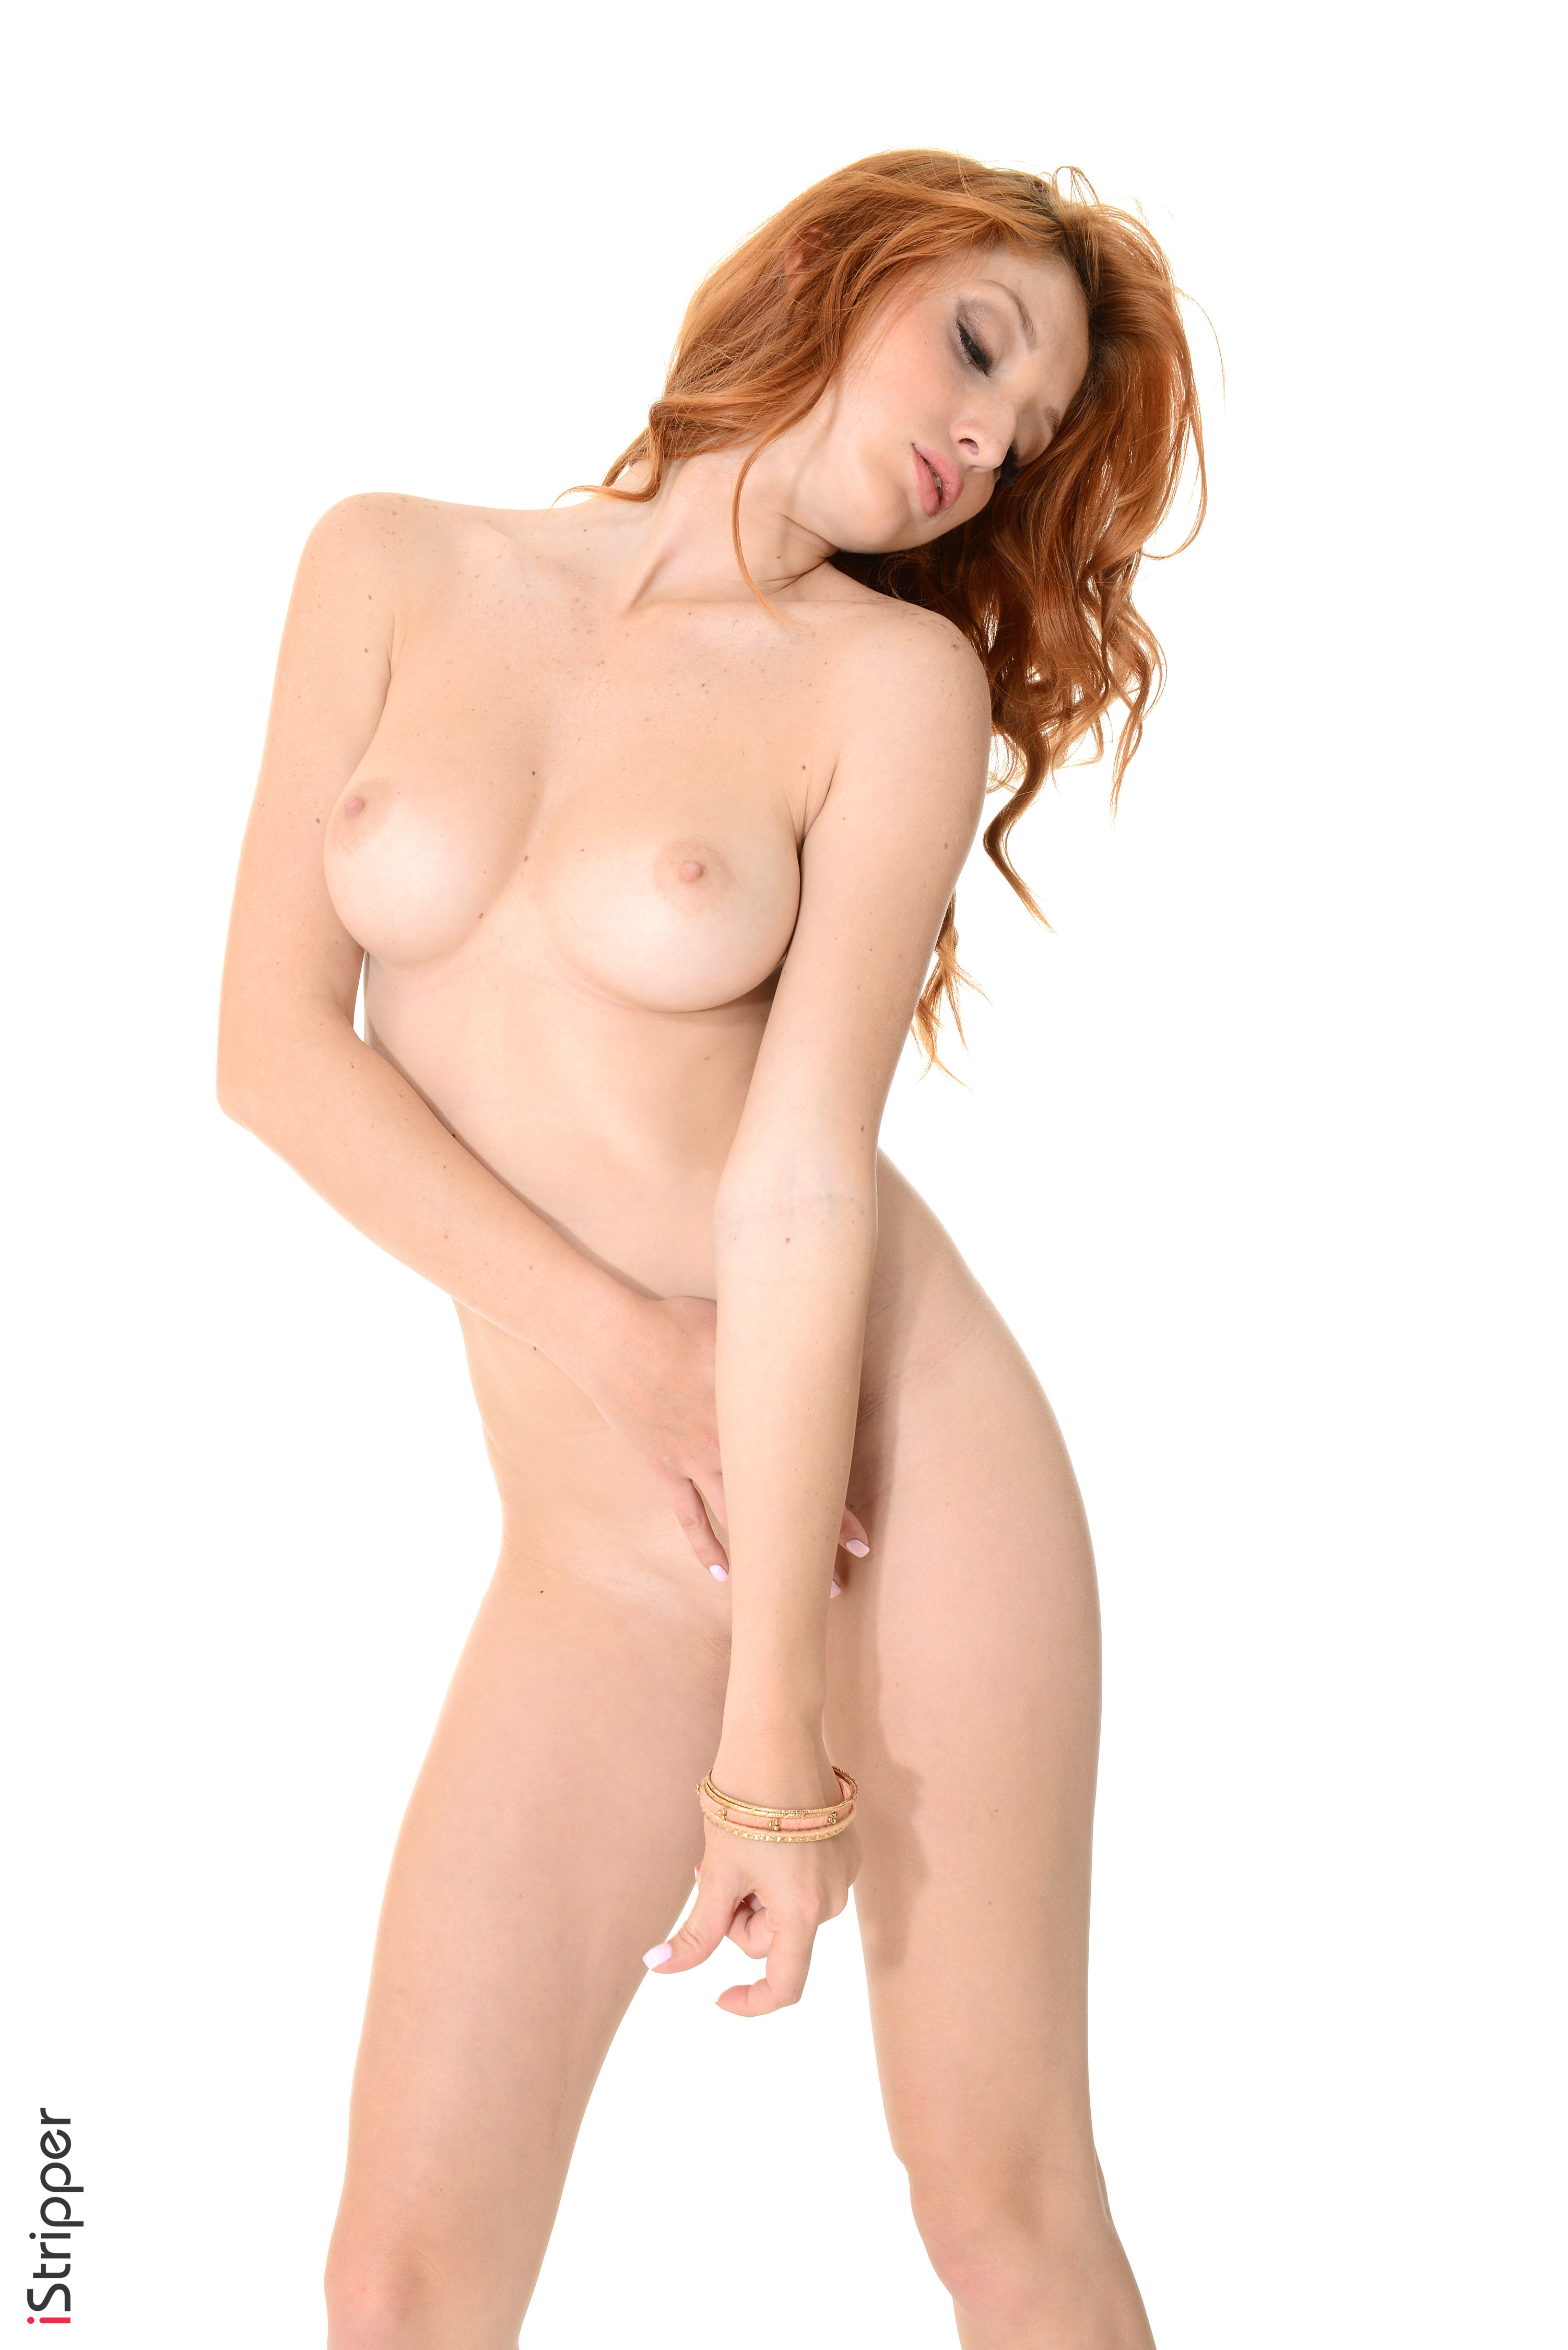 free live porn wallpapers